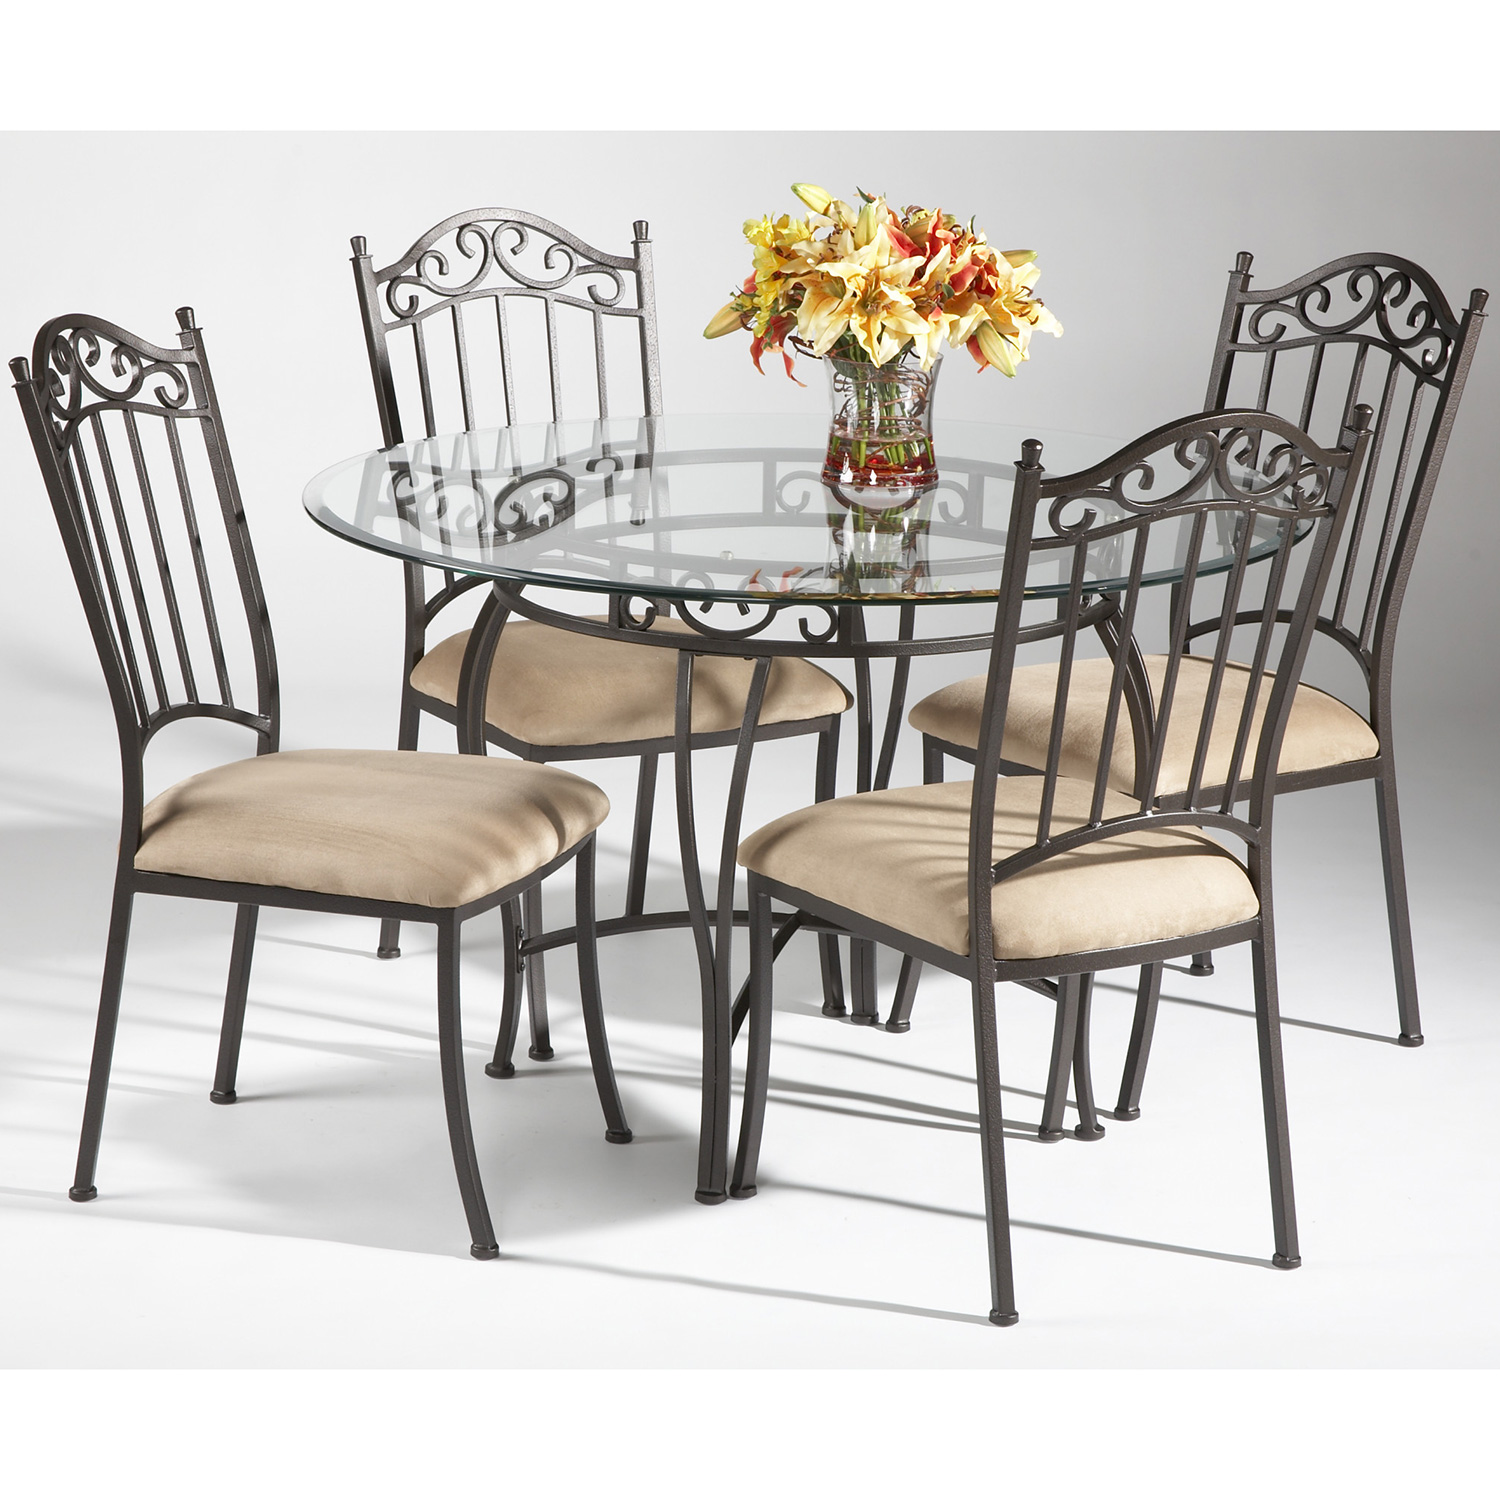 Wrought Iron 9 Piece Round Dining Set in Antique Taupe by Chintaly Imports